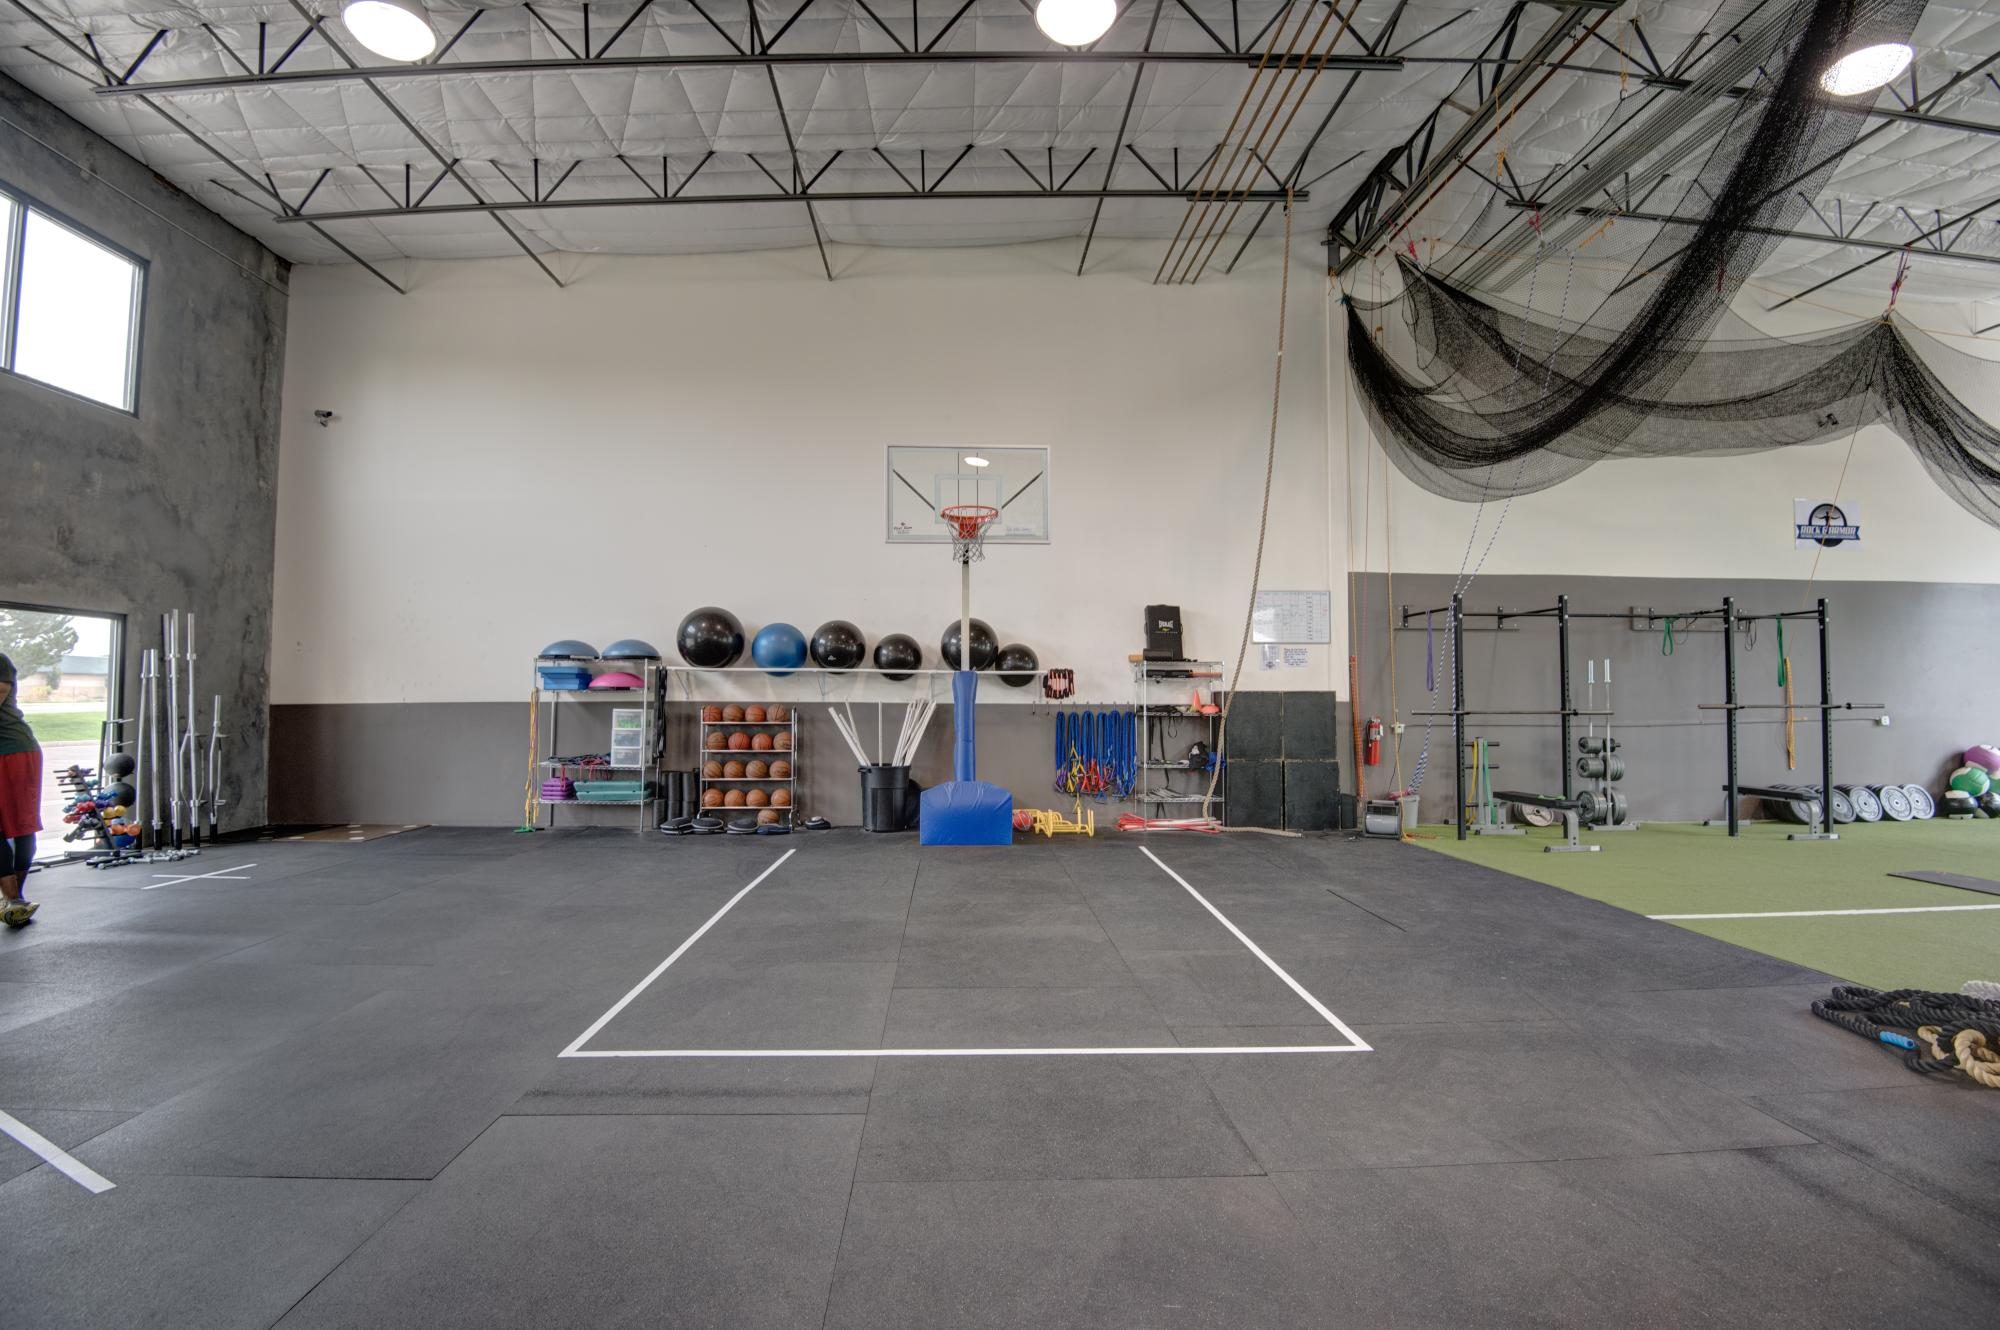 Basketball Specific Area